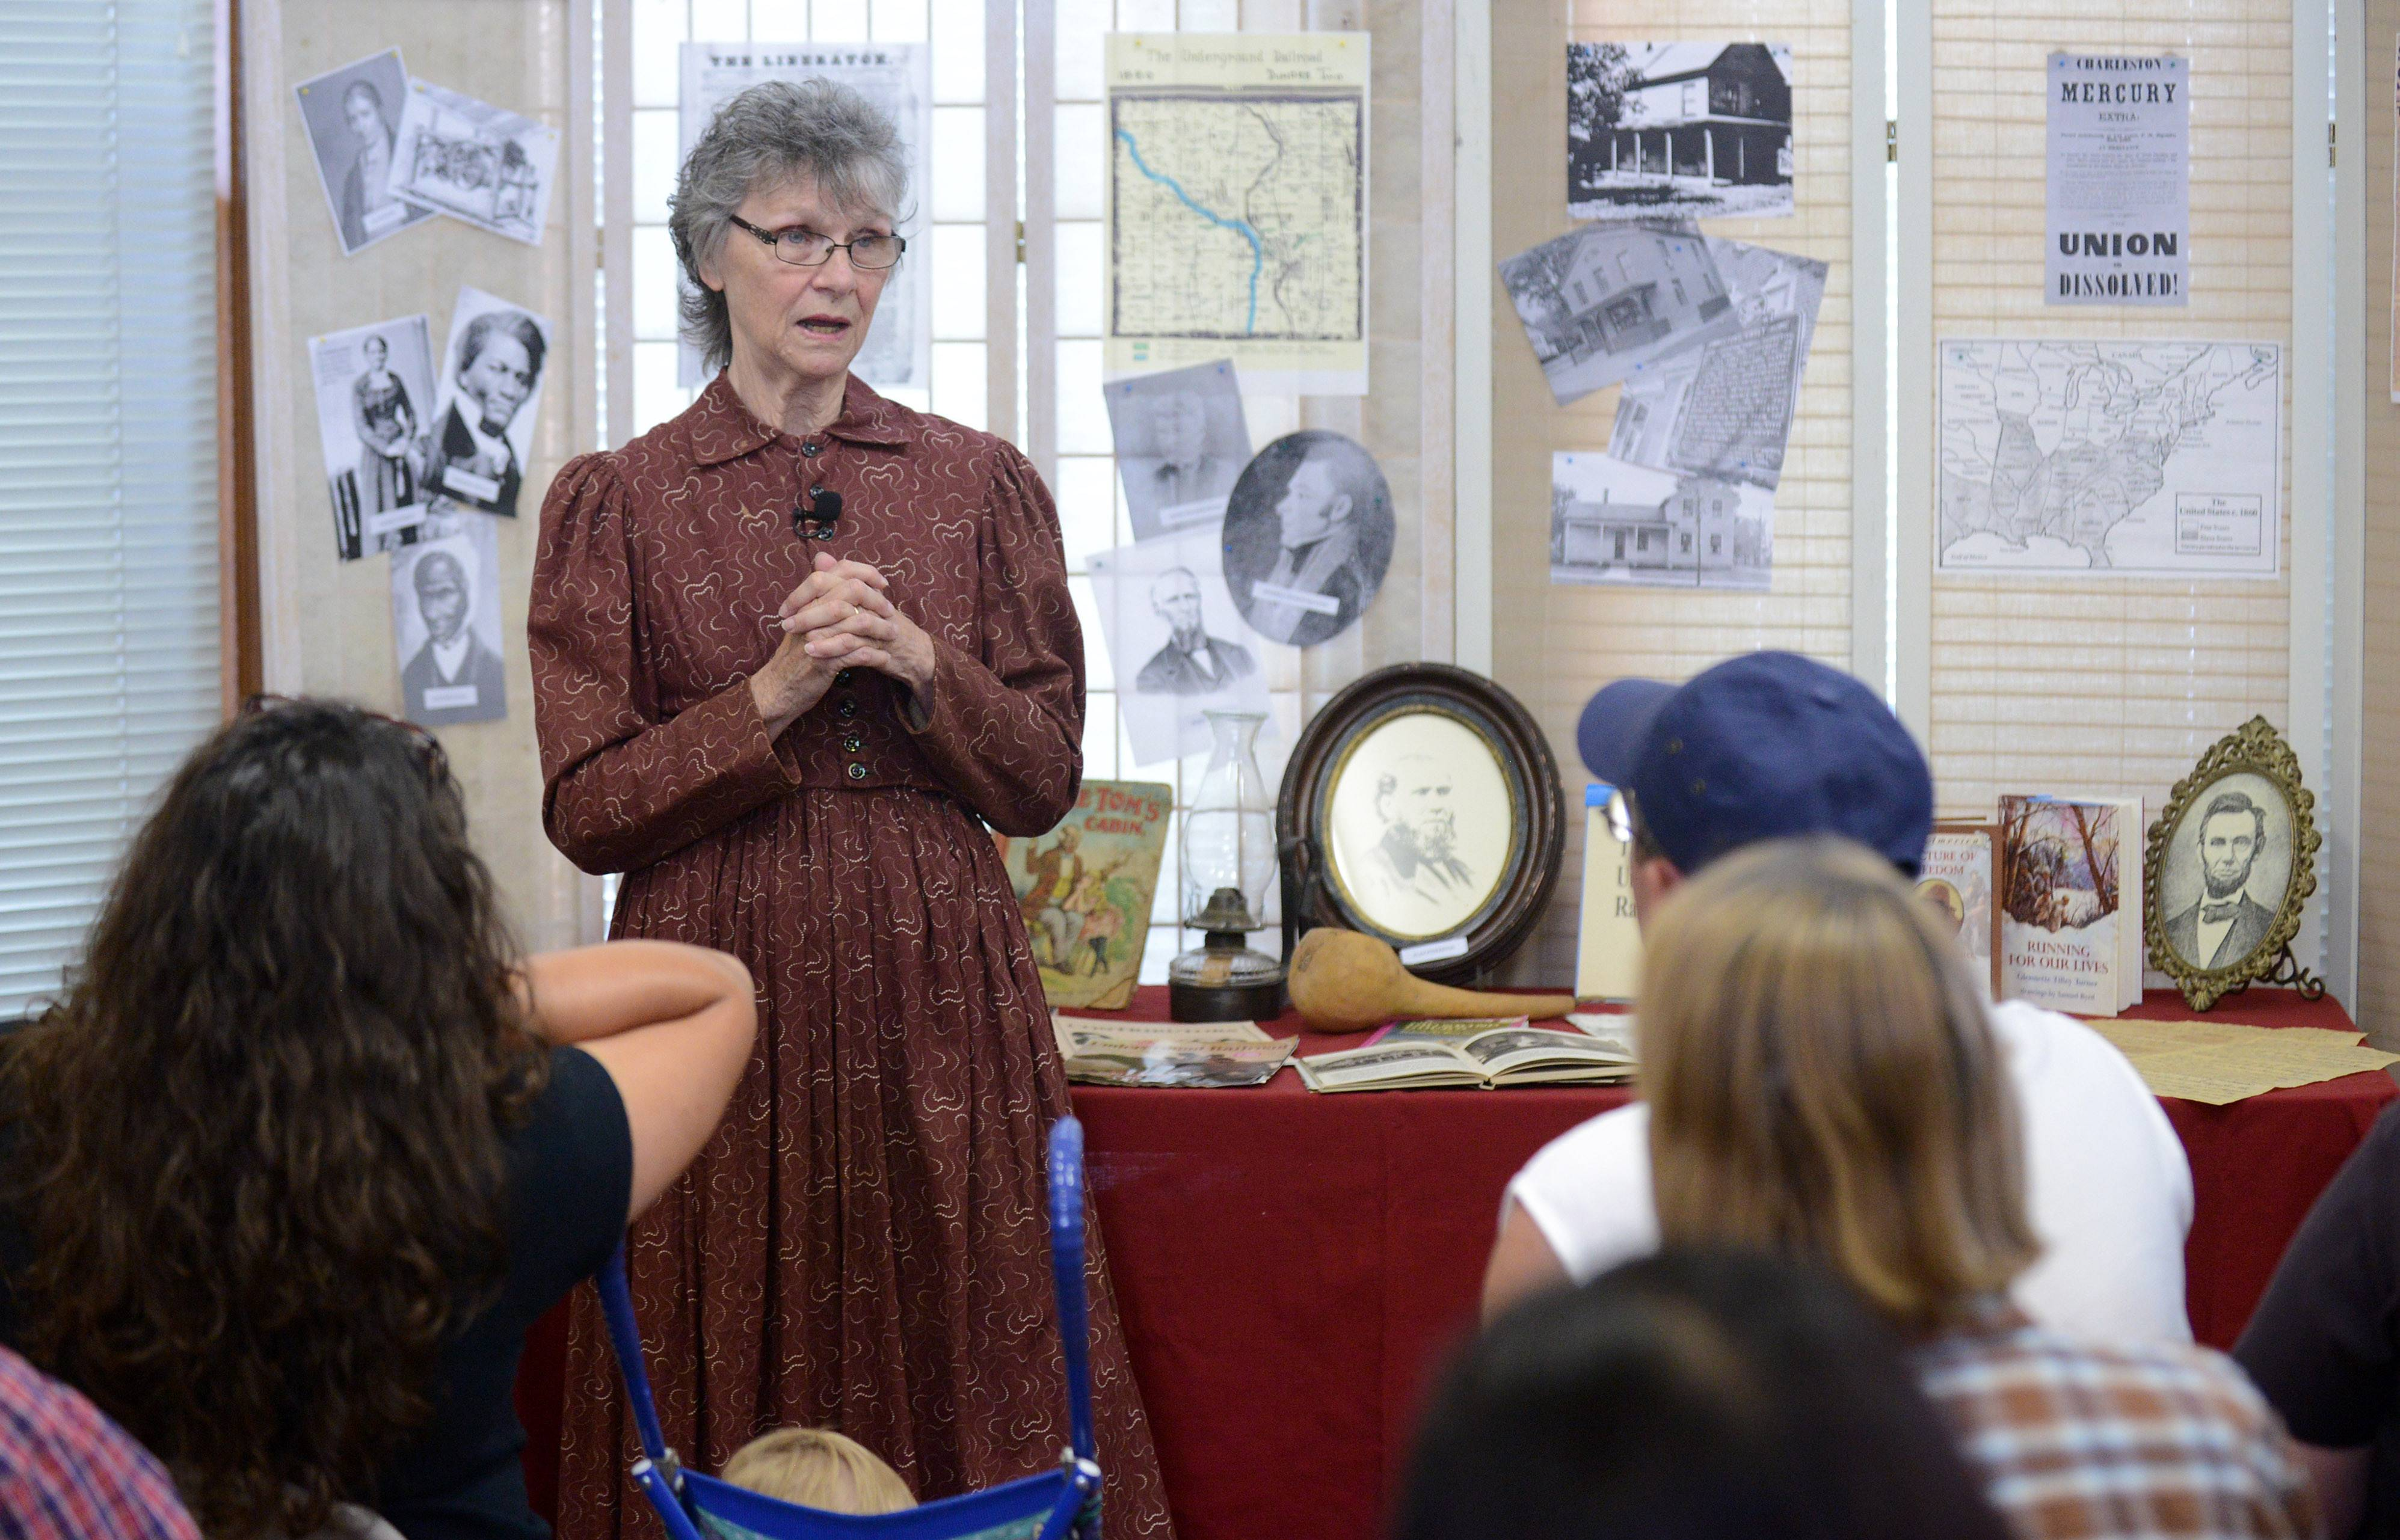 Marge Edwards of the Dundee Township Historical Society talks about the Underground Railroad and local citizens who helped slaves escape to freedom at The Depot Museum on Saturday.